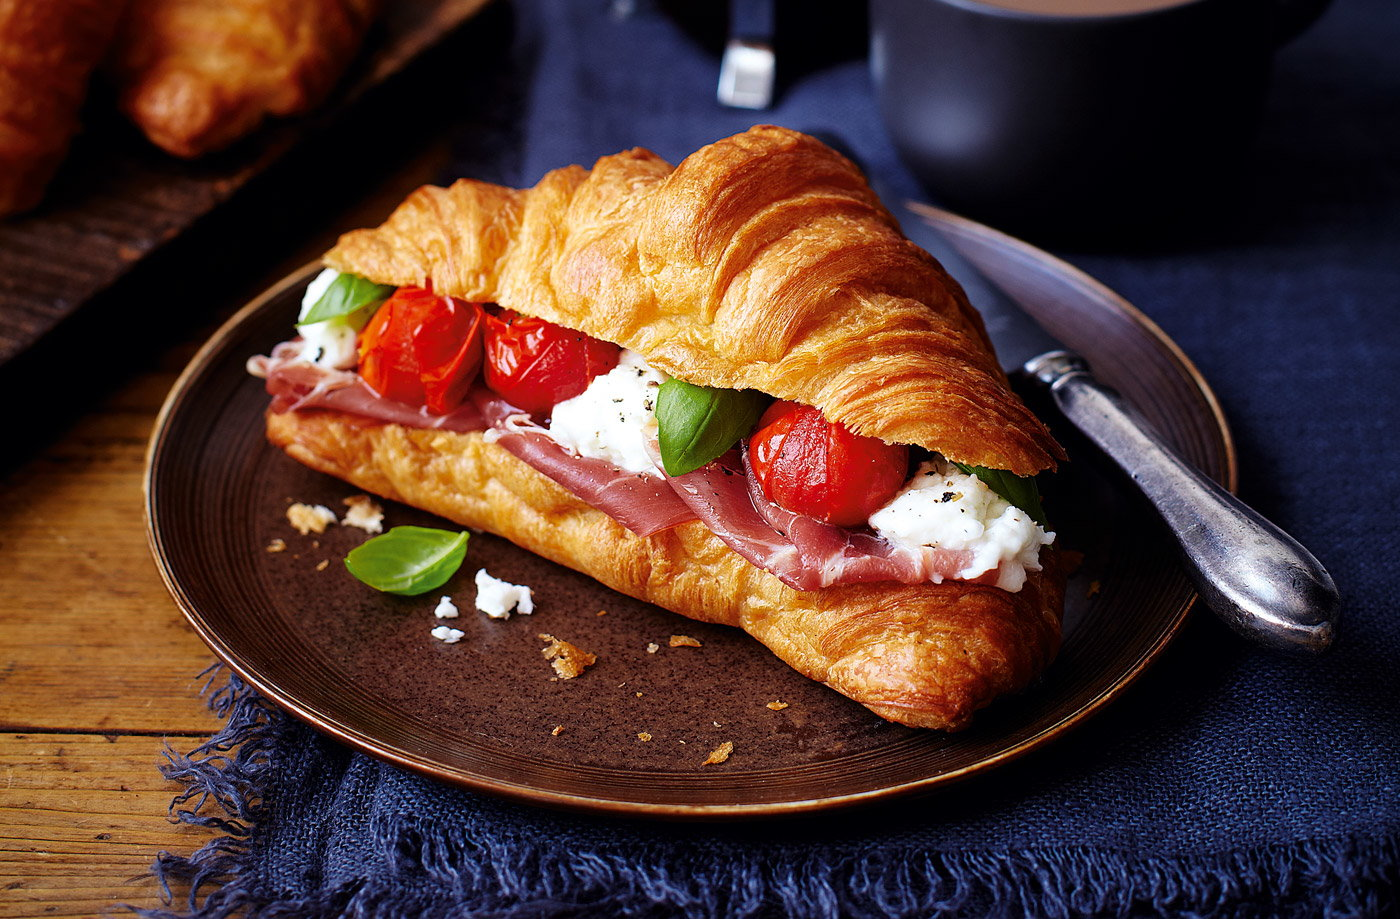 Tesco Finest Parma ham, mozzarella and roast cherry tomato croissants